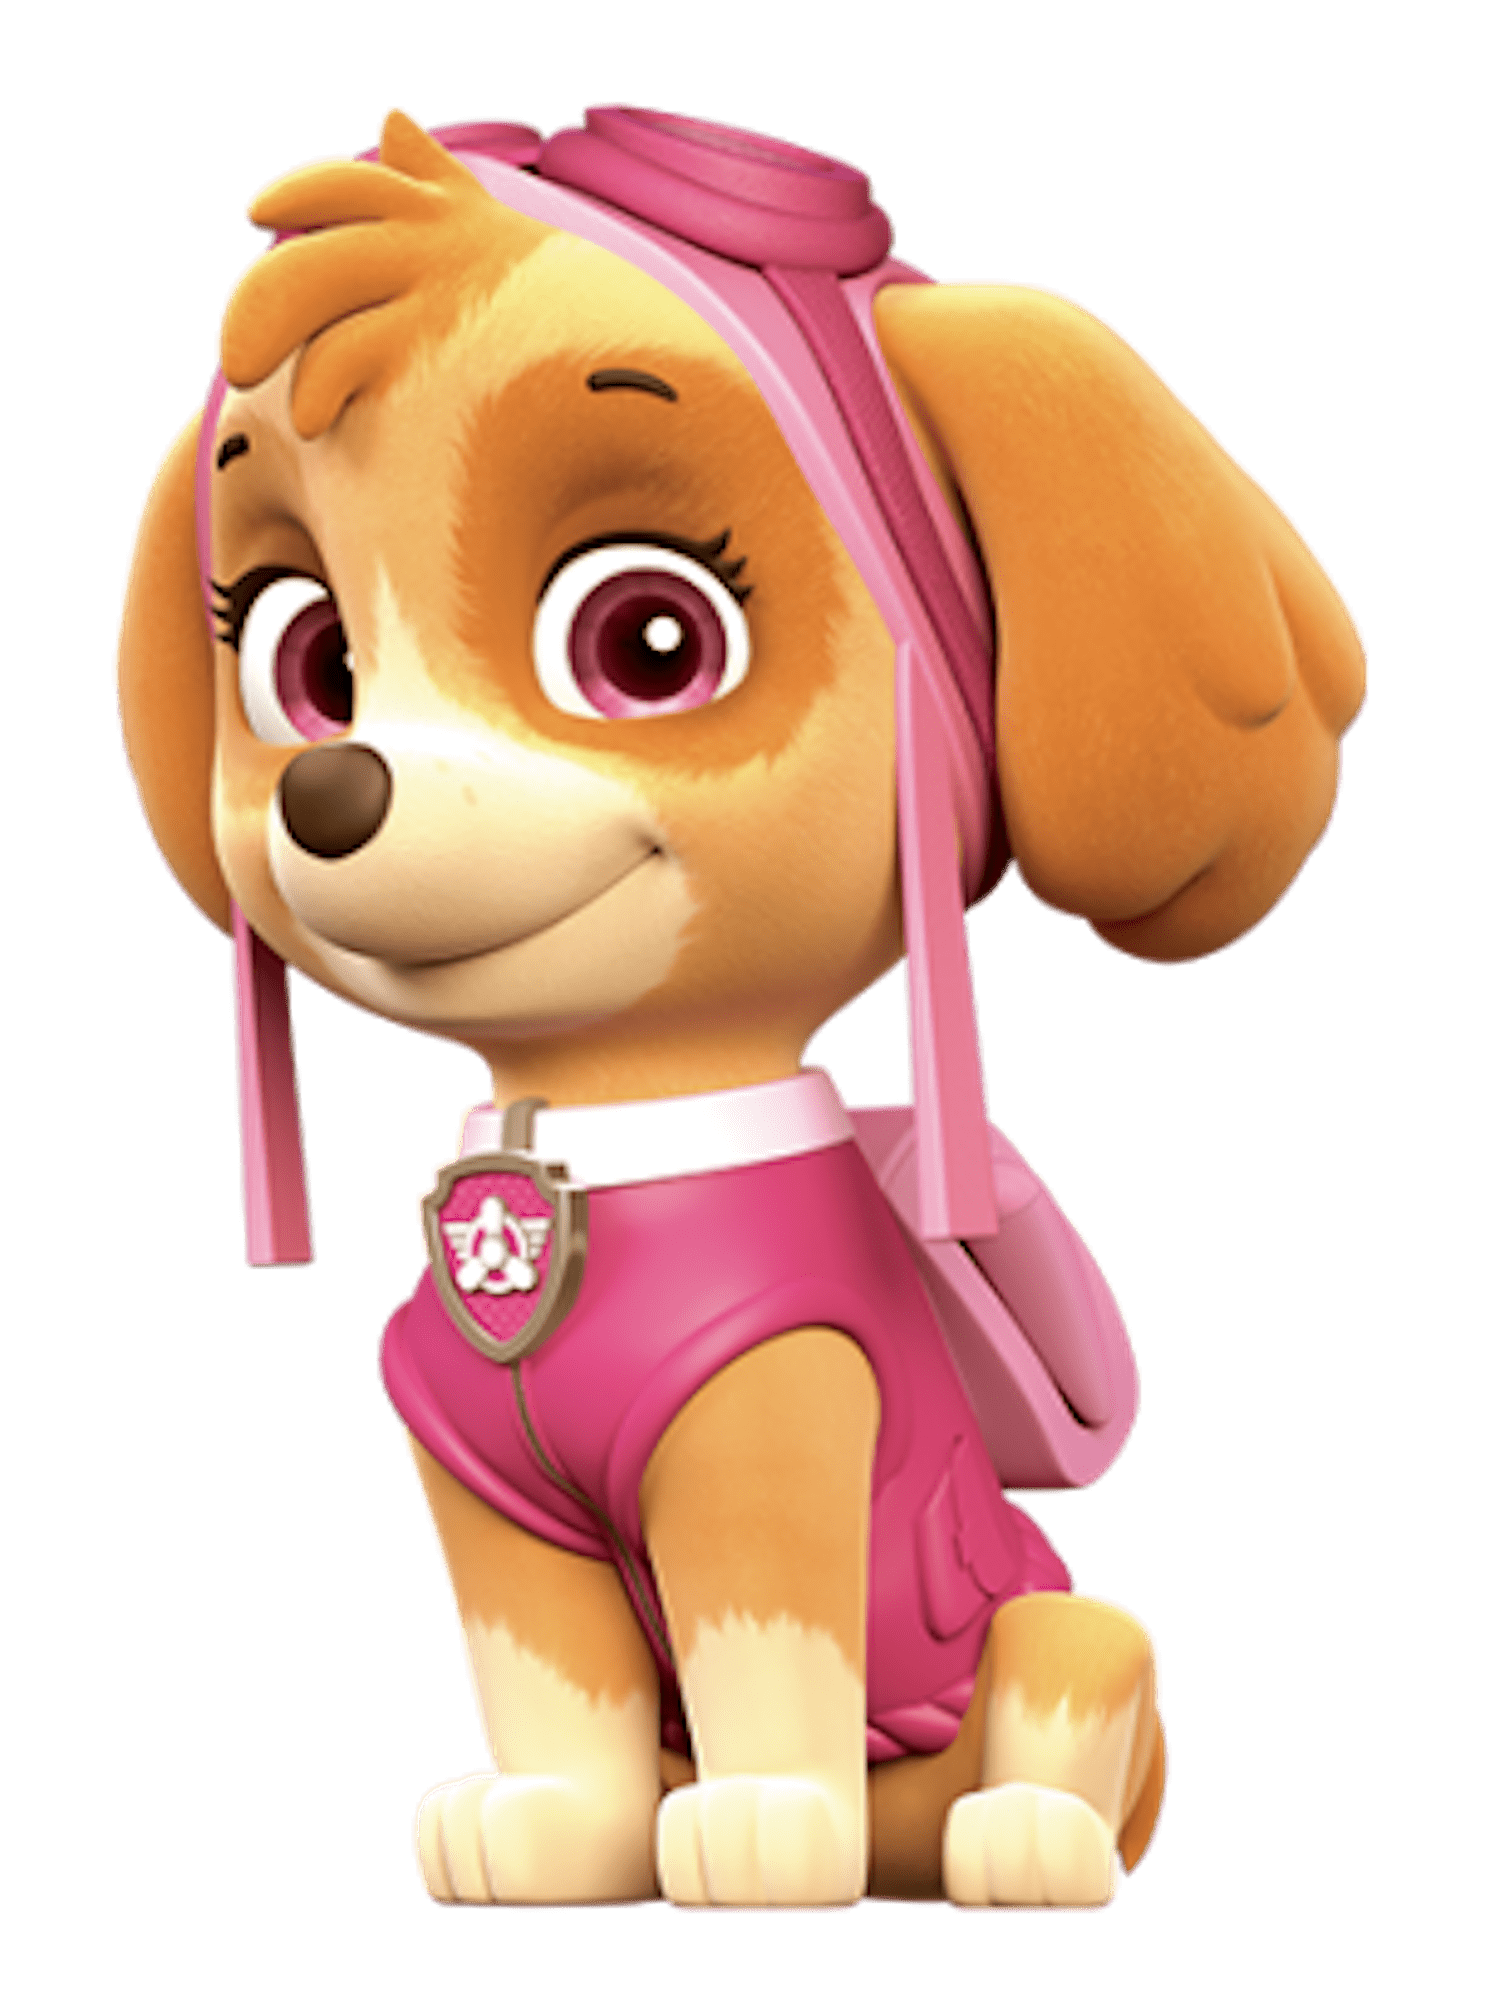 Everest paw patrol png. Skye clipart